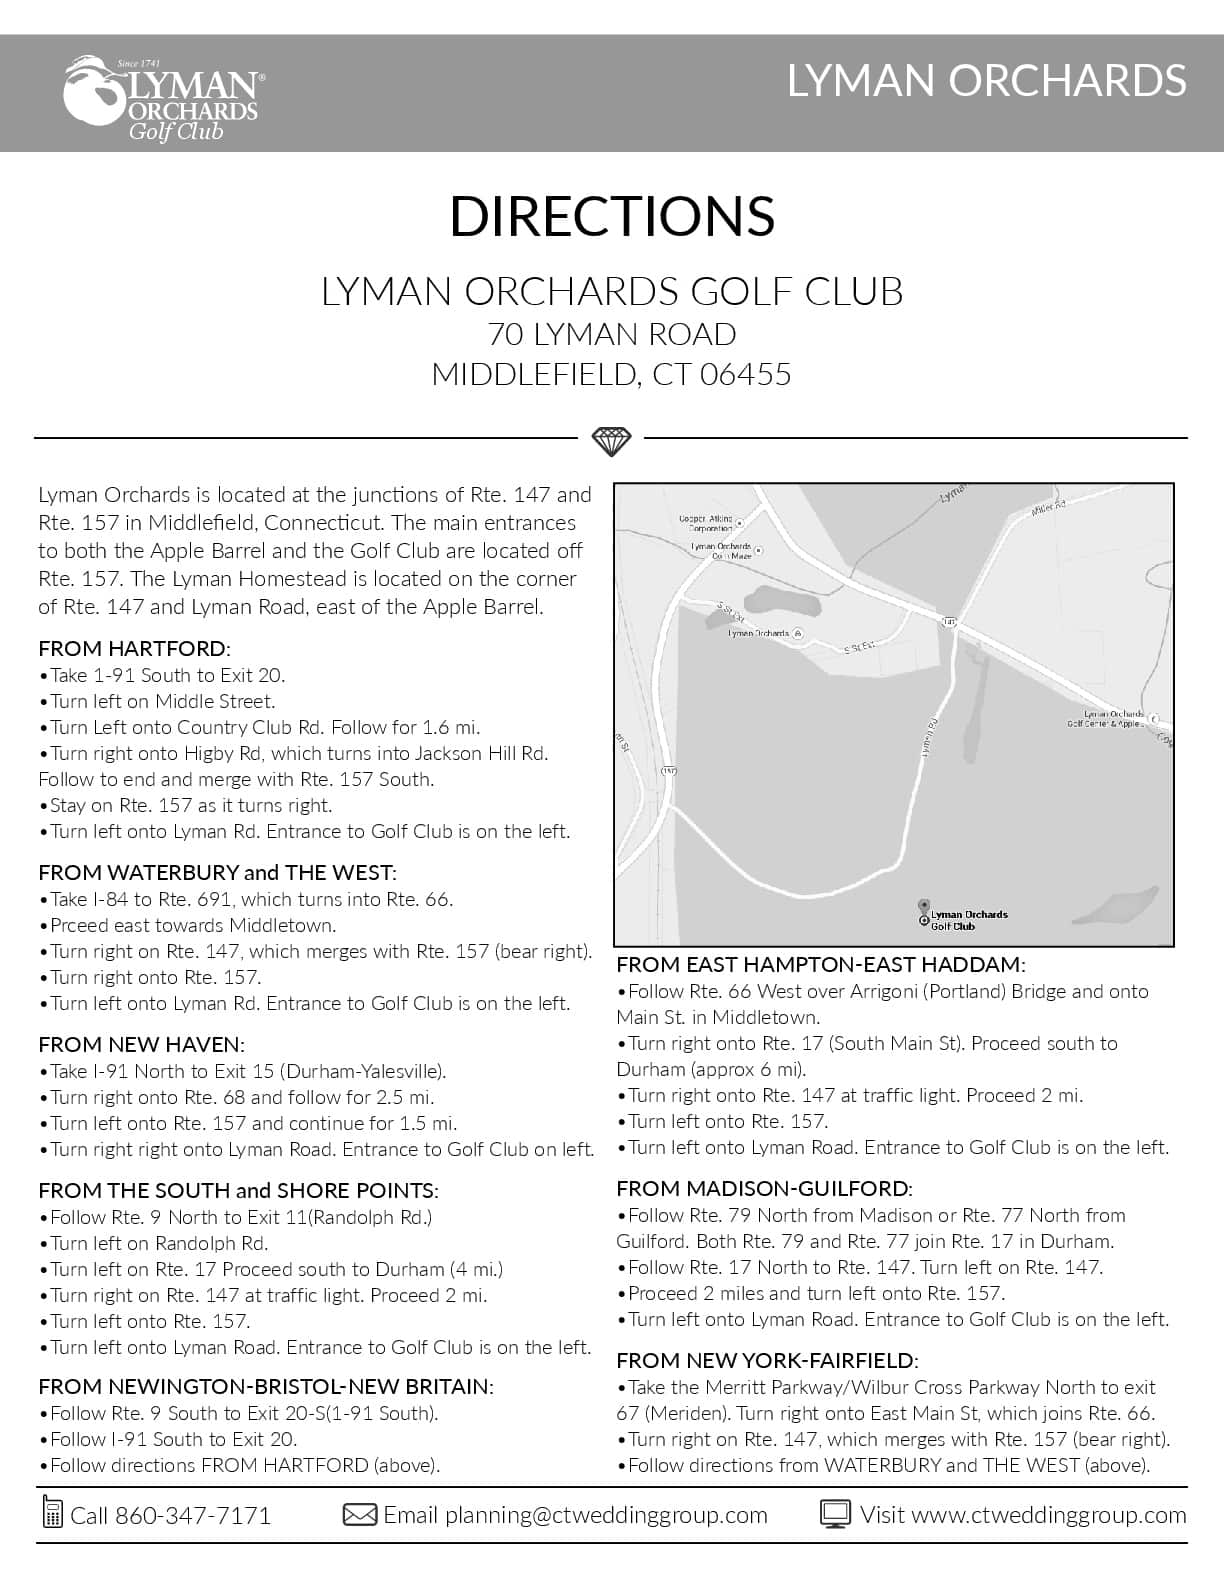 117_13018_Lyman-Orchards-Golf-Club-Directions-001